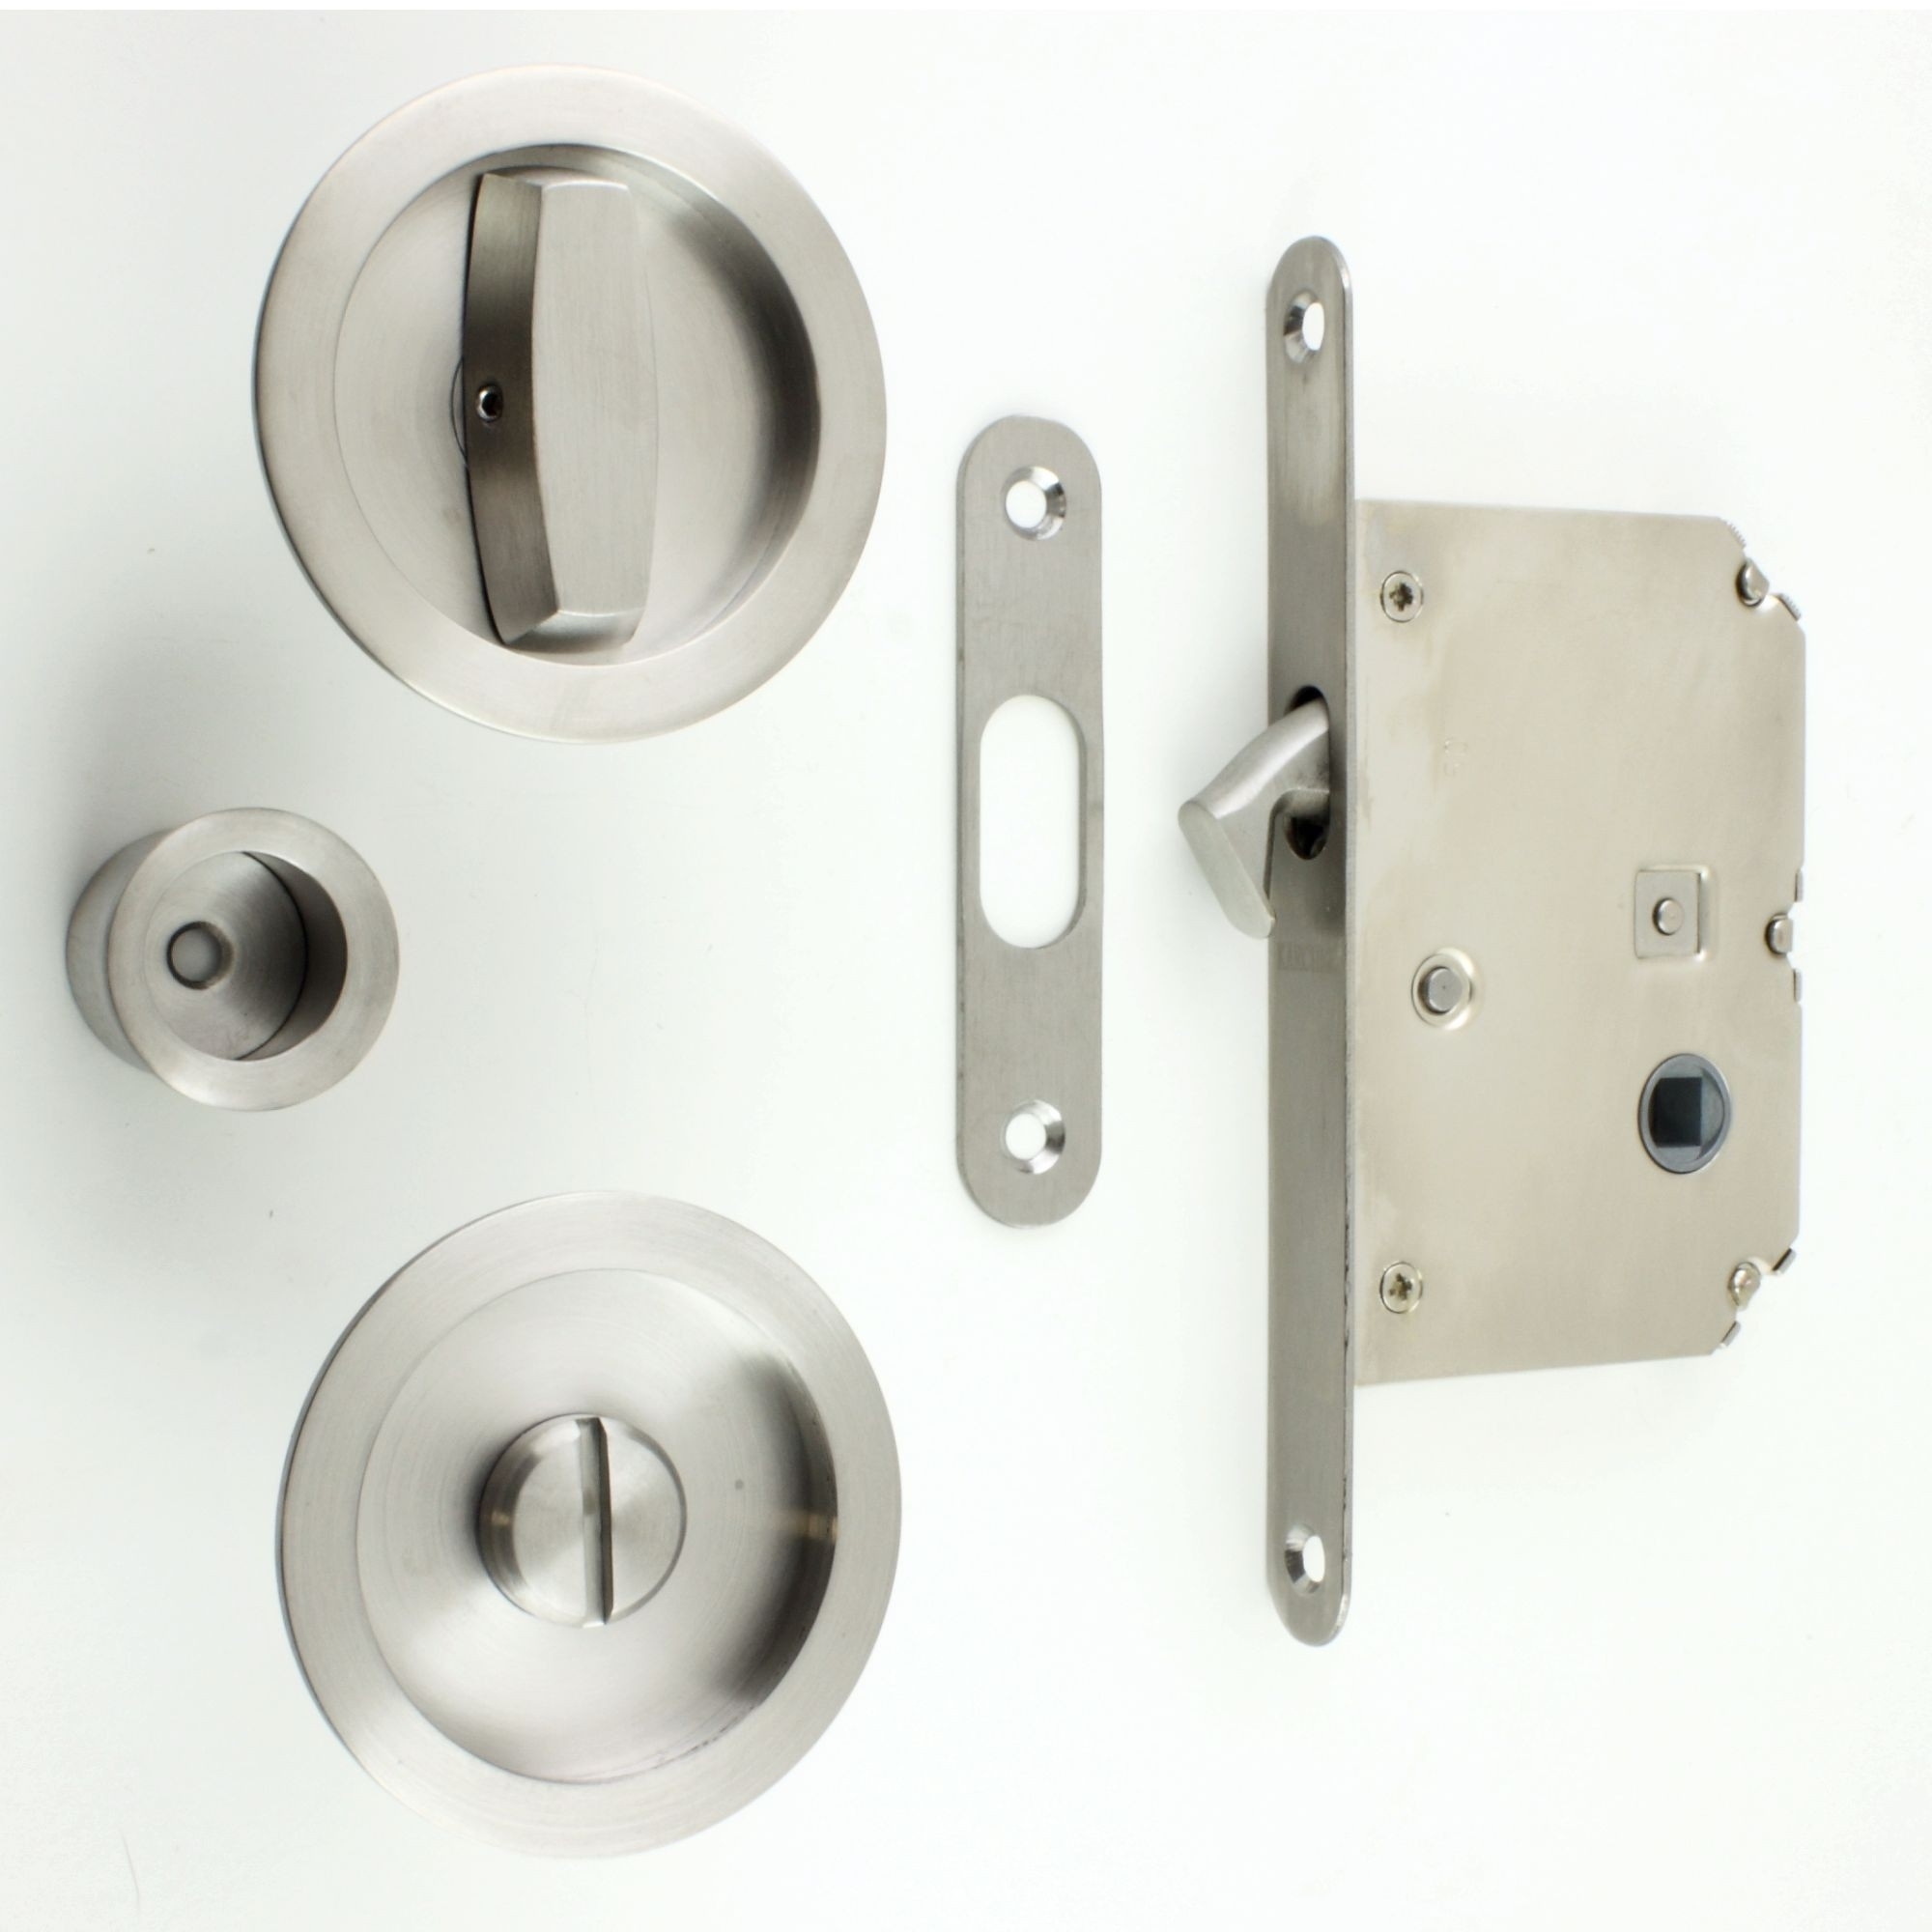 Permalink to Sliding Bathroom Door Lock